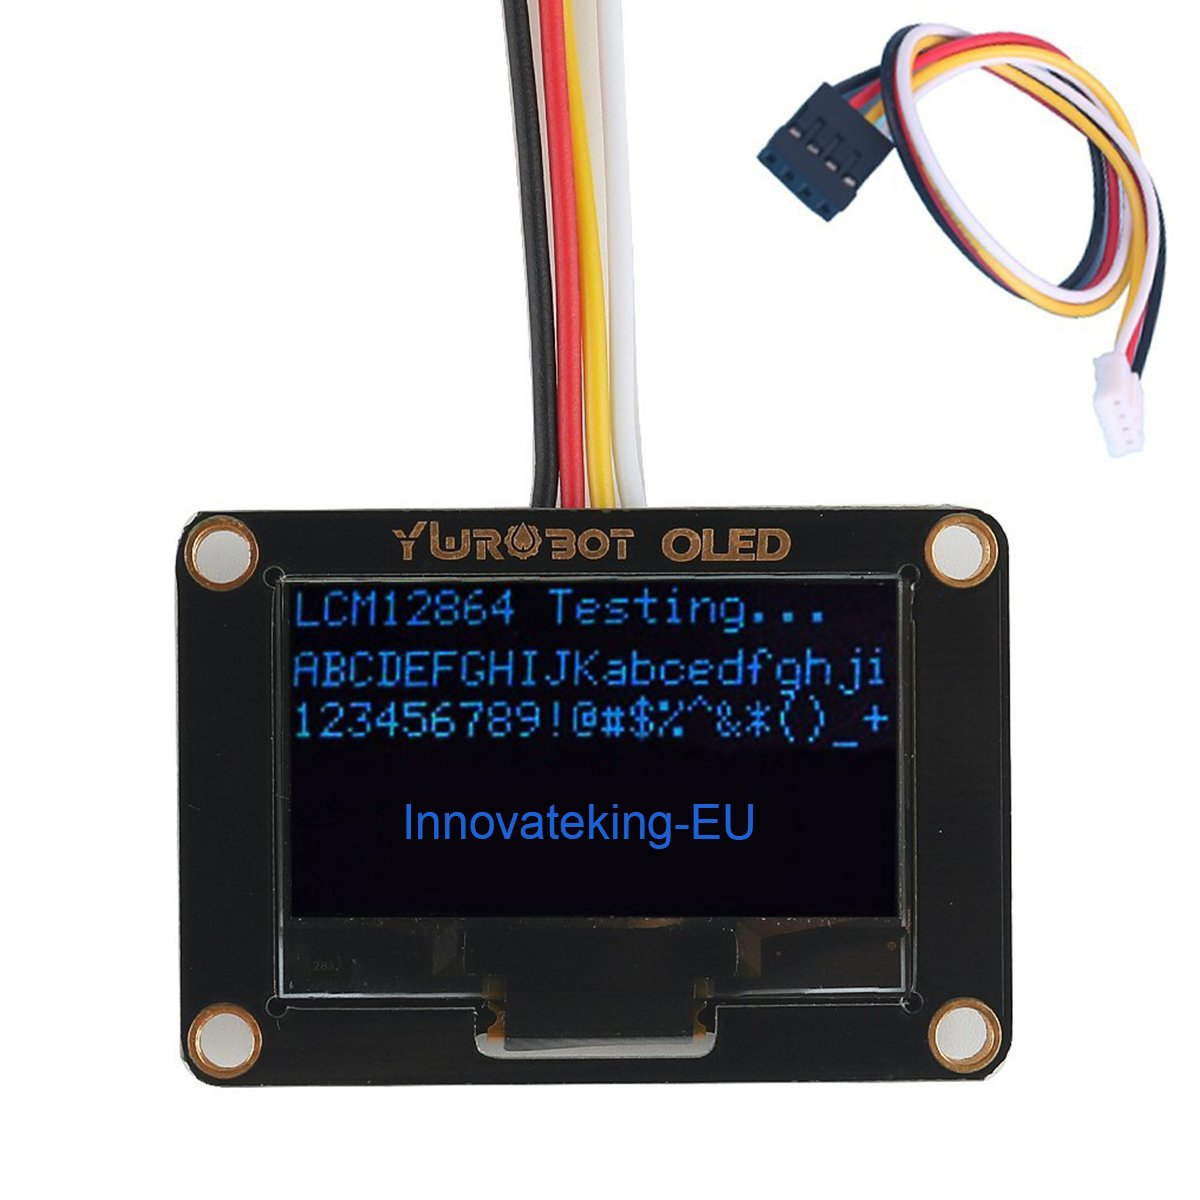 Innovateking-EU 0.96 OLED Display OLED 128x64 I2C Display Module Grove Dot Matrix Display Arduino Raspberry Pi OLED Display SSD1308 Chip